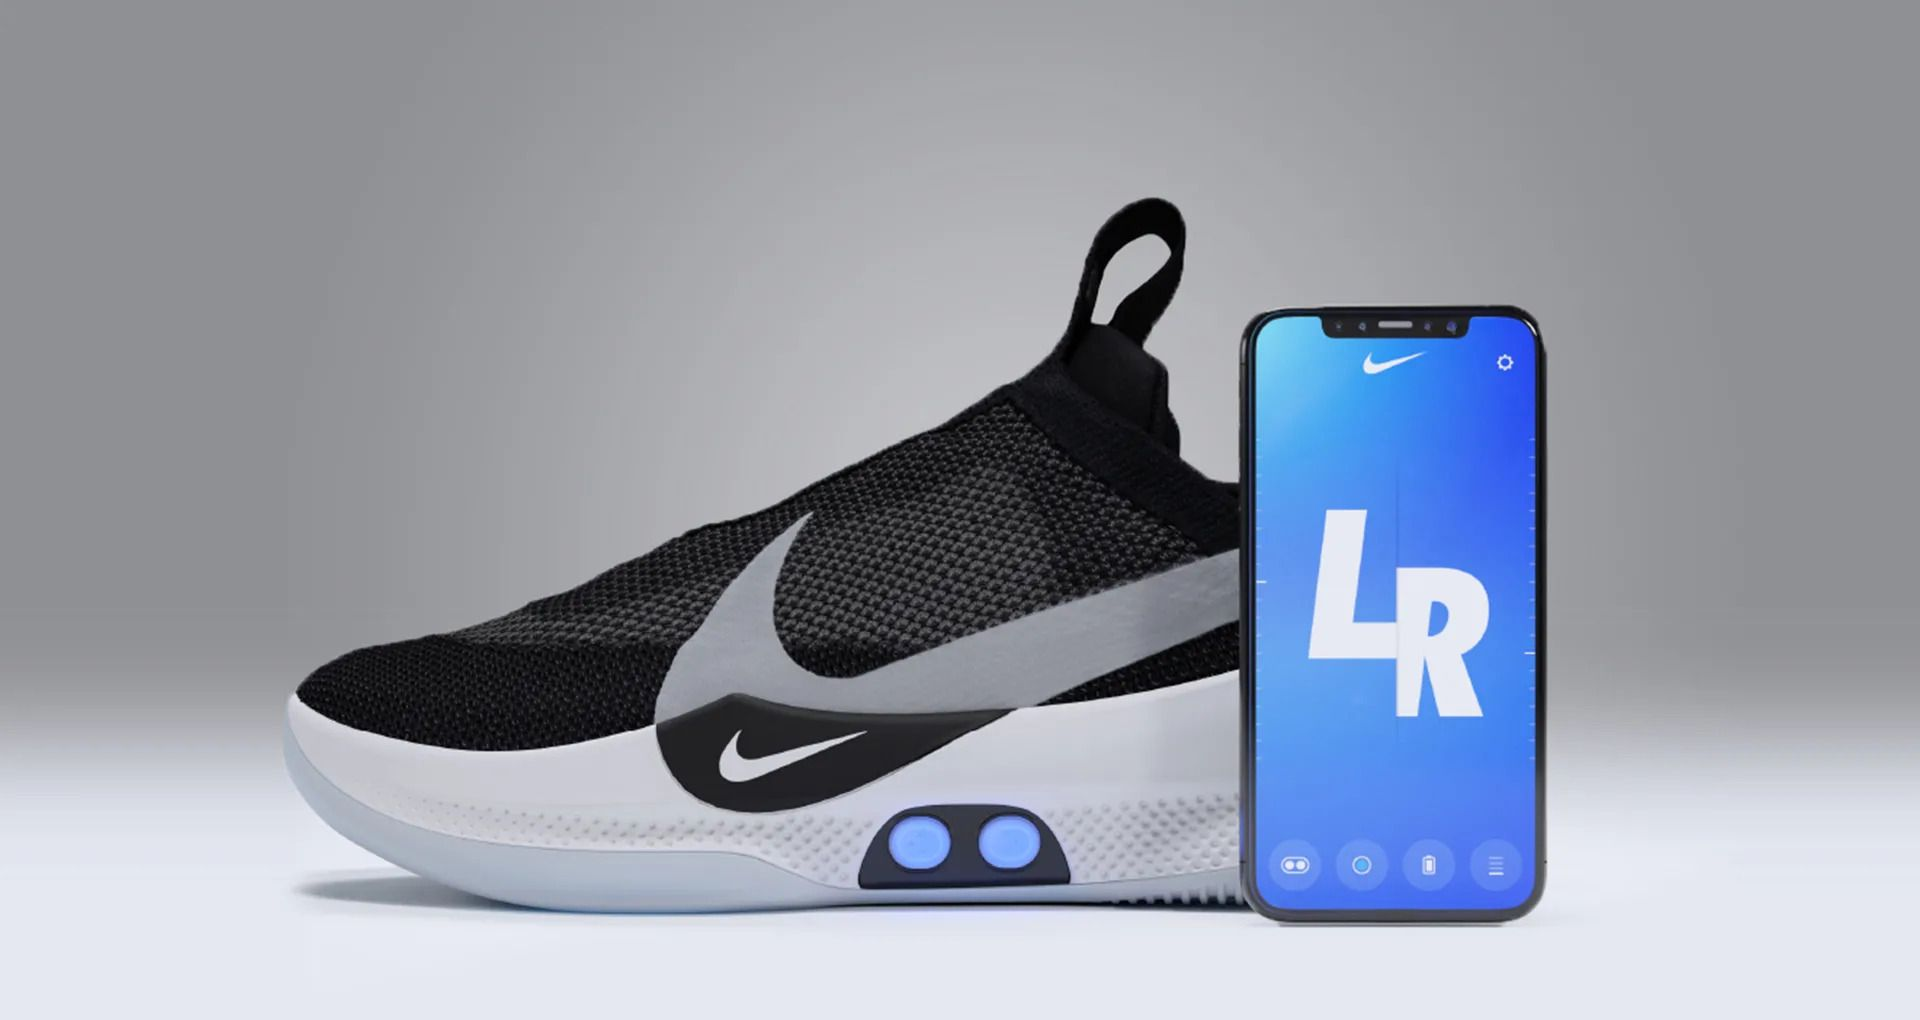 A Software Update Bricked Nike's $350 Self-Tying Shoes